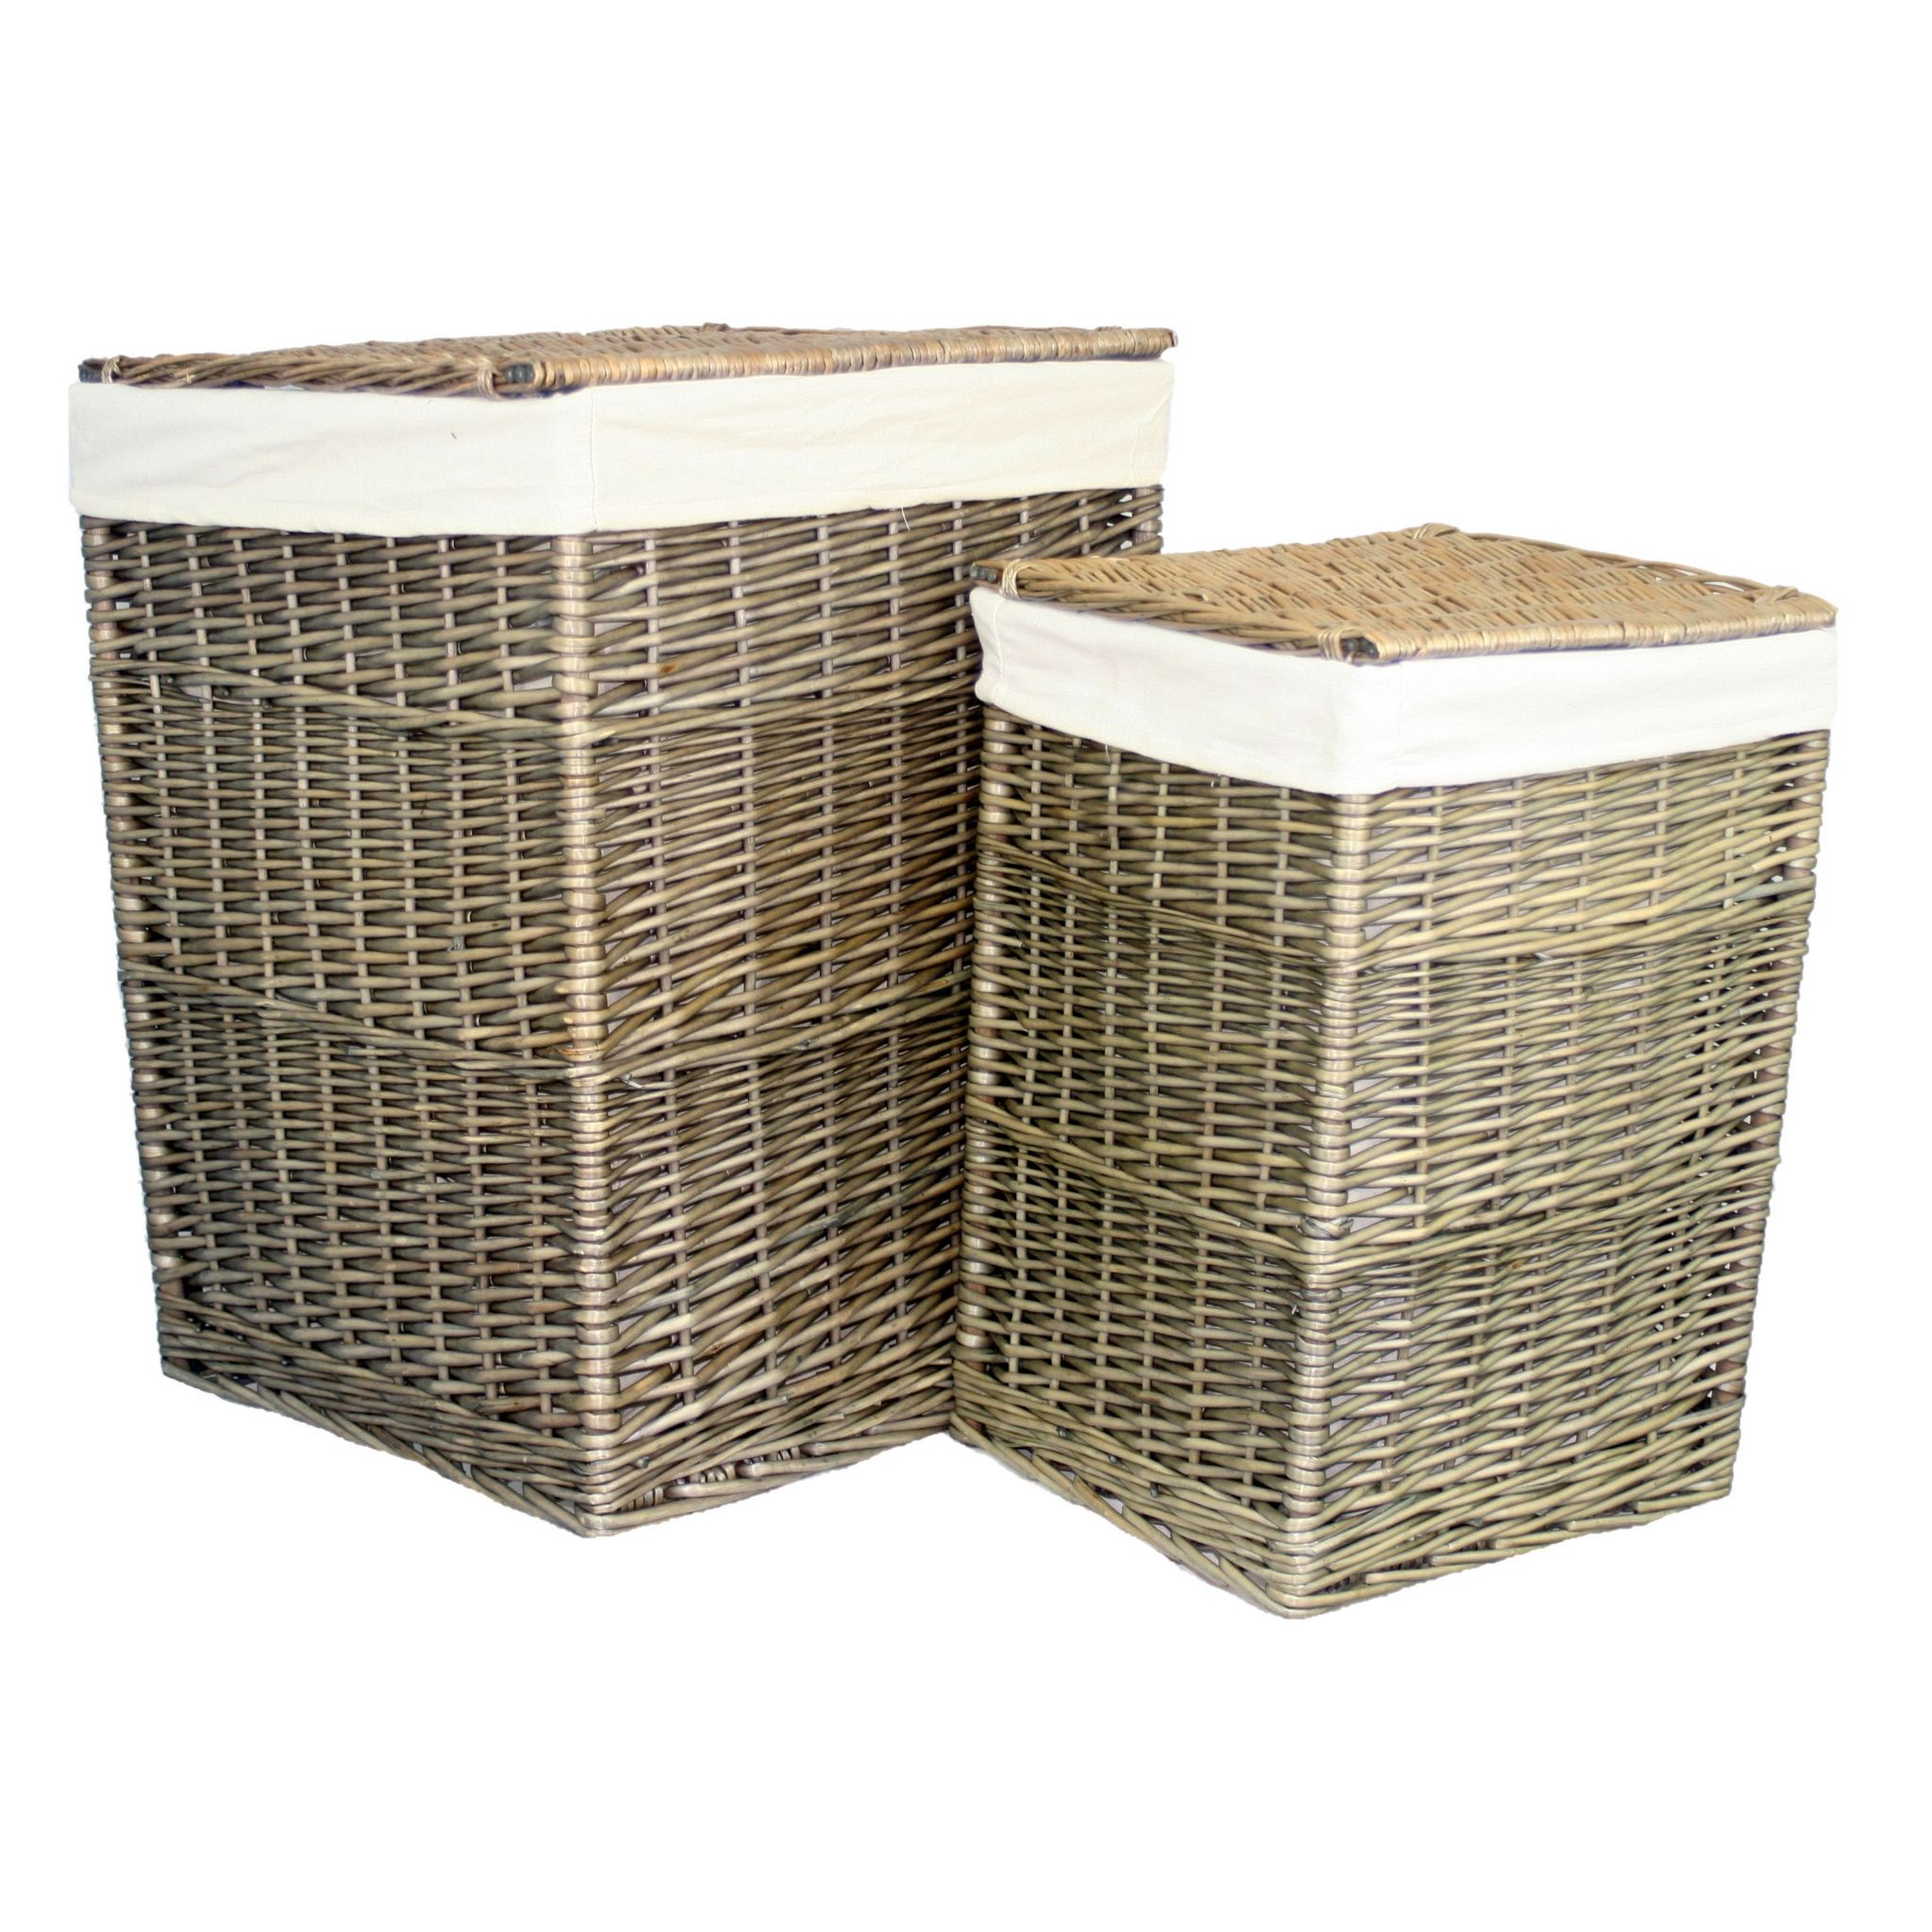 Antique Wash Wicker Lined Storage Basket: Suffolk 2 Nesting Vintage Willow Wicker Lined Laundry Baskets